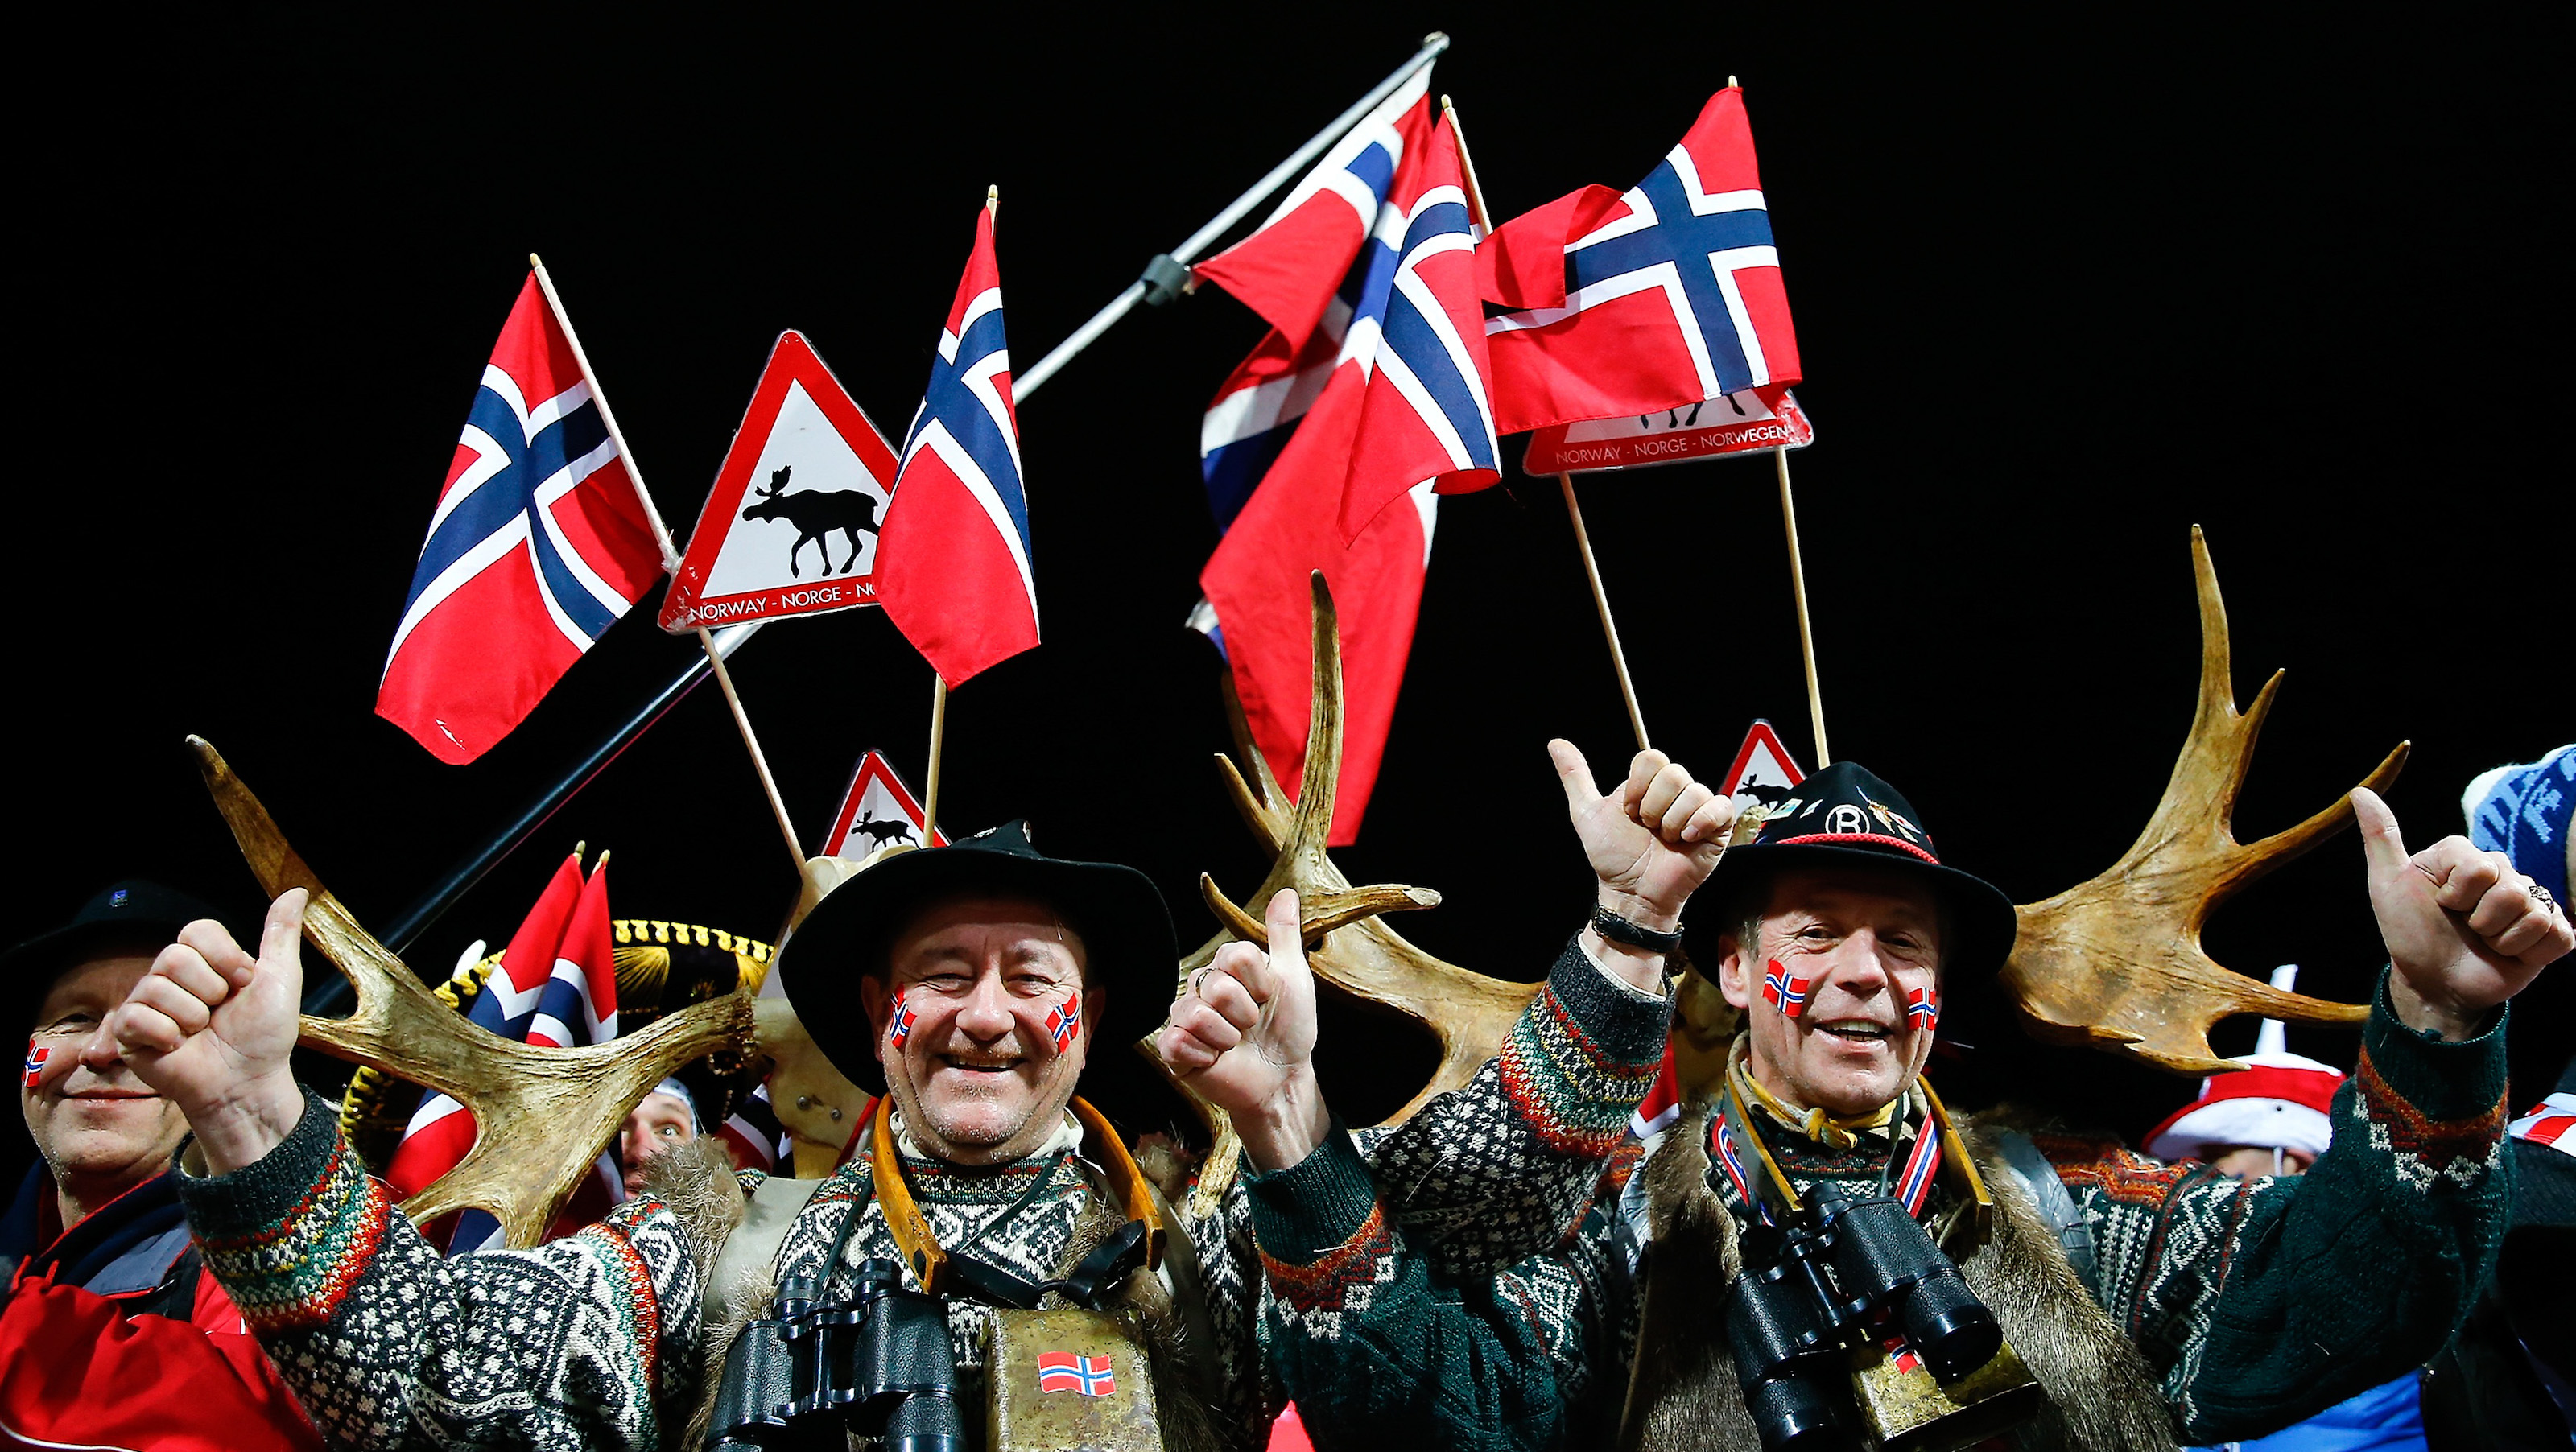 Norwegian supporters celebrate after the men's large hill team ski jumping final at the Nordic World Ski Championships in Falun February 28, 2015. Norway's Anders Bardal, Anders Jacobsen, Anders Fannemel and Rune Velta won the event ahead of Austria's Stefan Kraft, Michael Hayboeck, Manuel Poppinger and Gregor Schlierenzauer on second place and Poland's Piotr Zyla, Klemens Muranka, Jan Ziobro and Kamil Stoch on third place.                               REUTERS/Kai Pfaffenbach (SWEDEN  - Tags: SPORT SKIING)   - RTR4RKM8